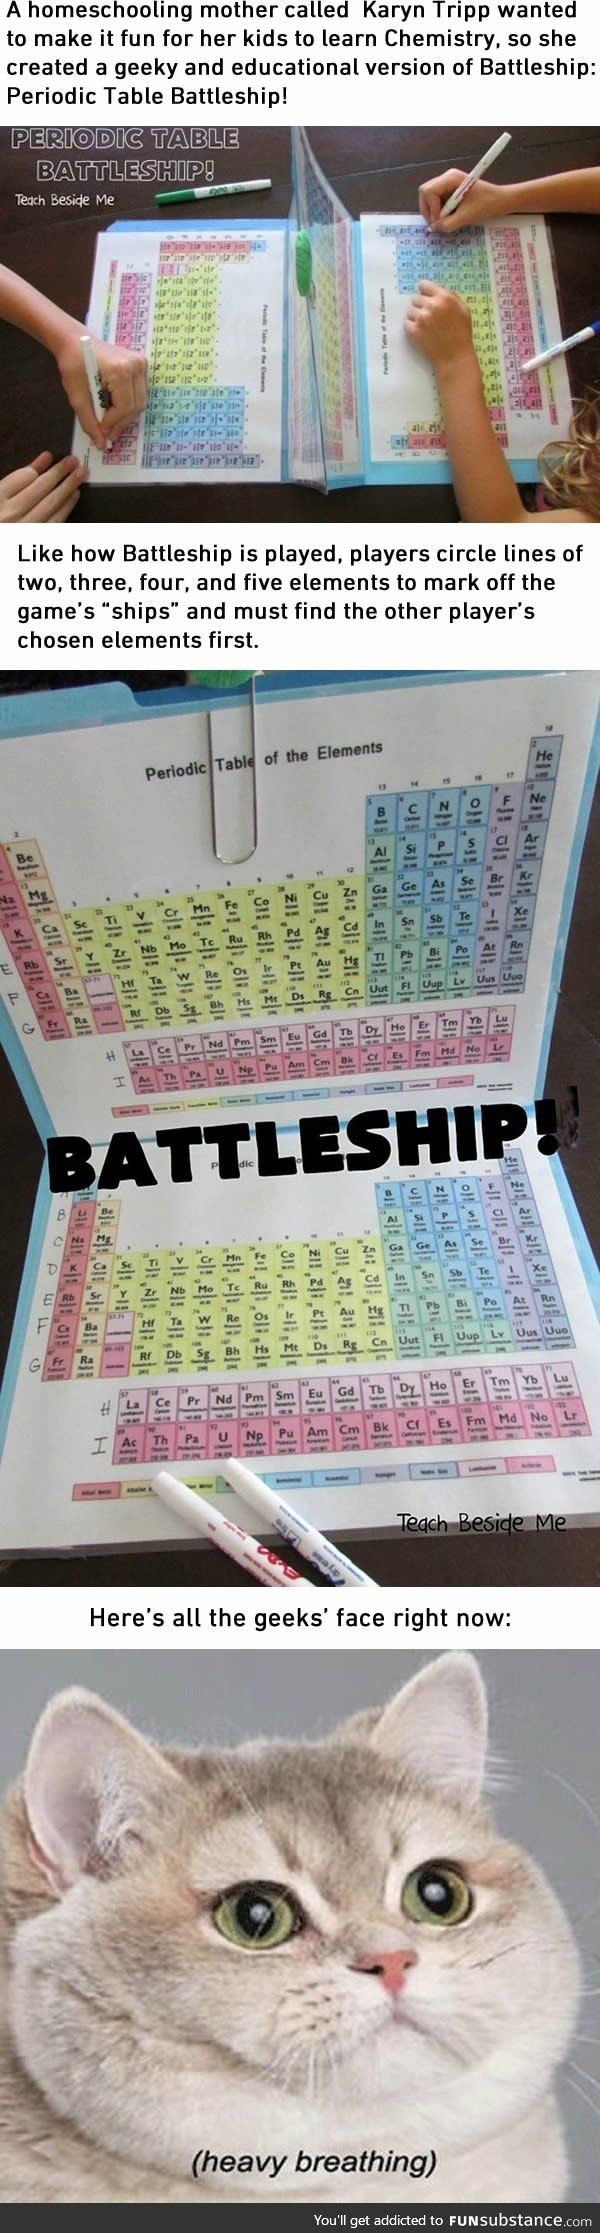 Periodic Table Battleship...